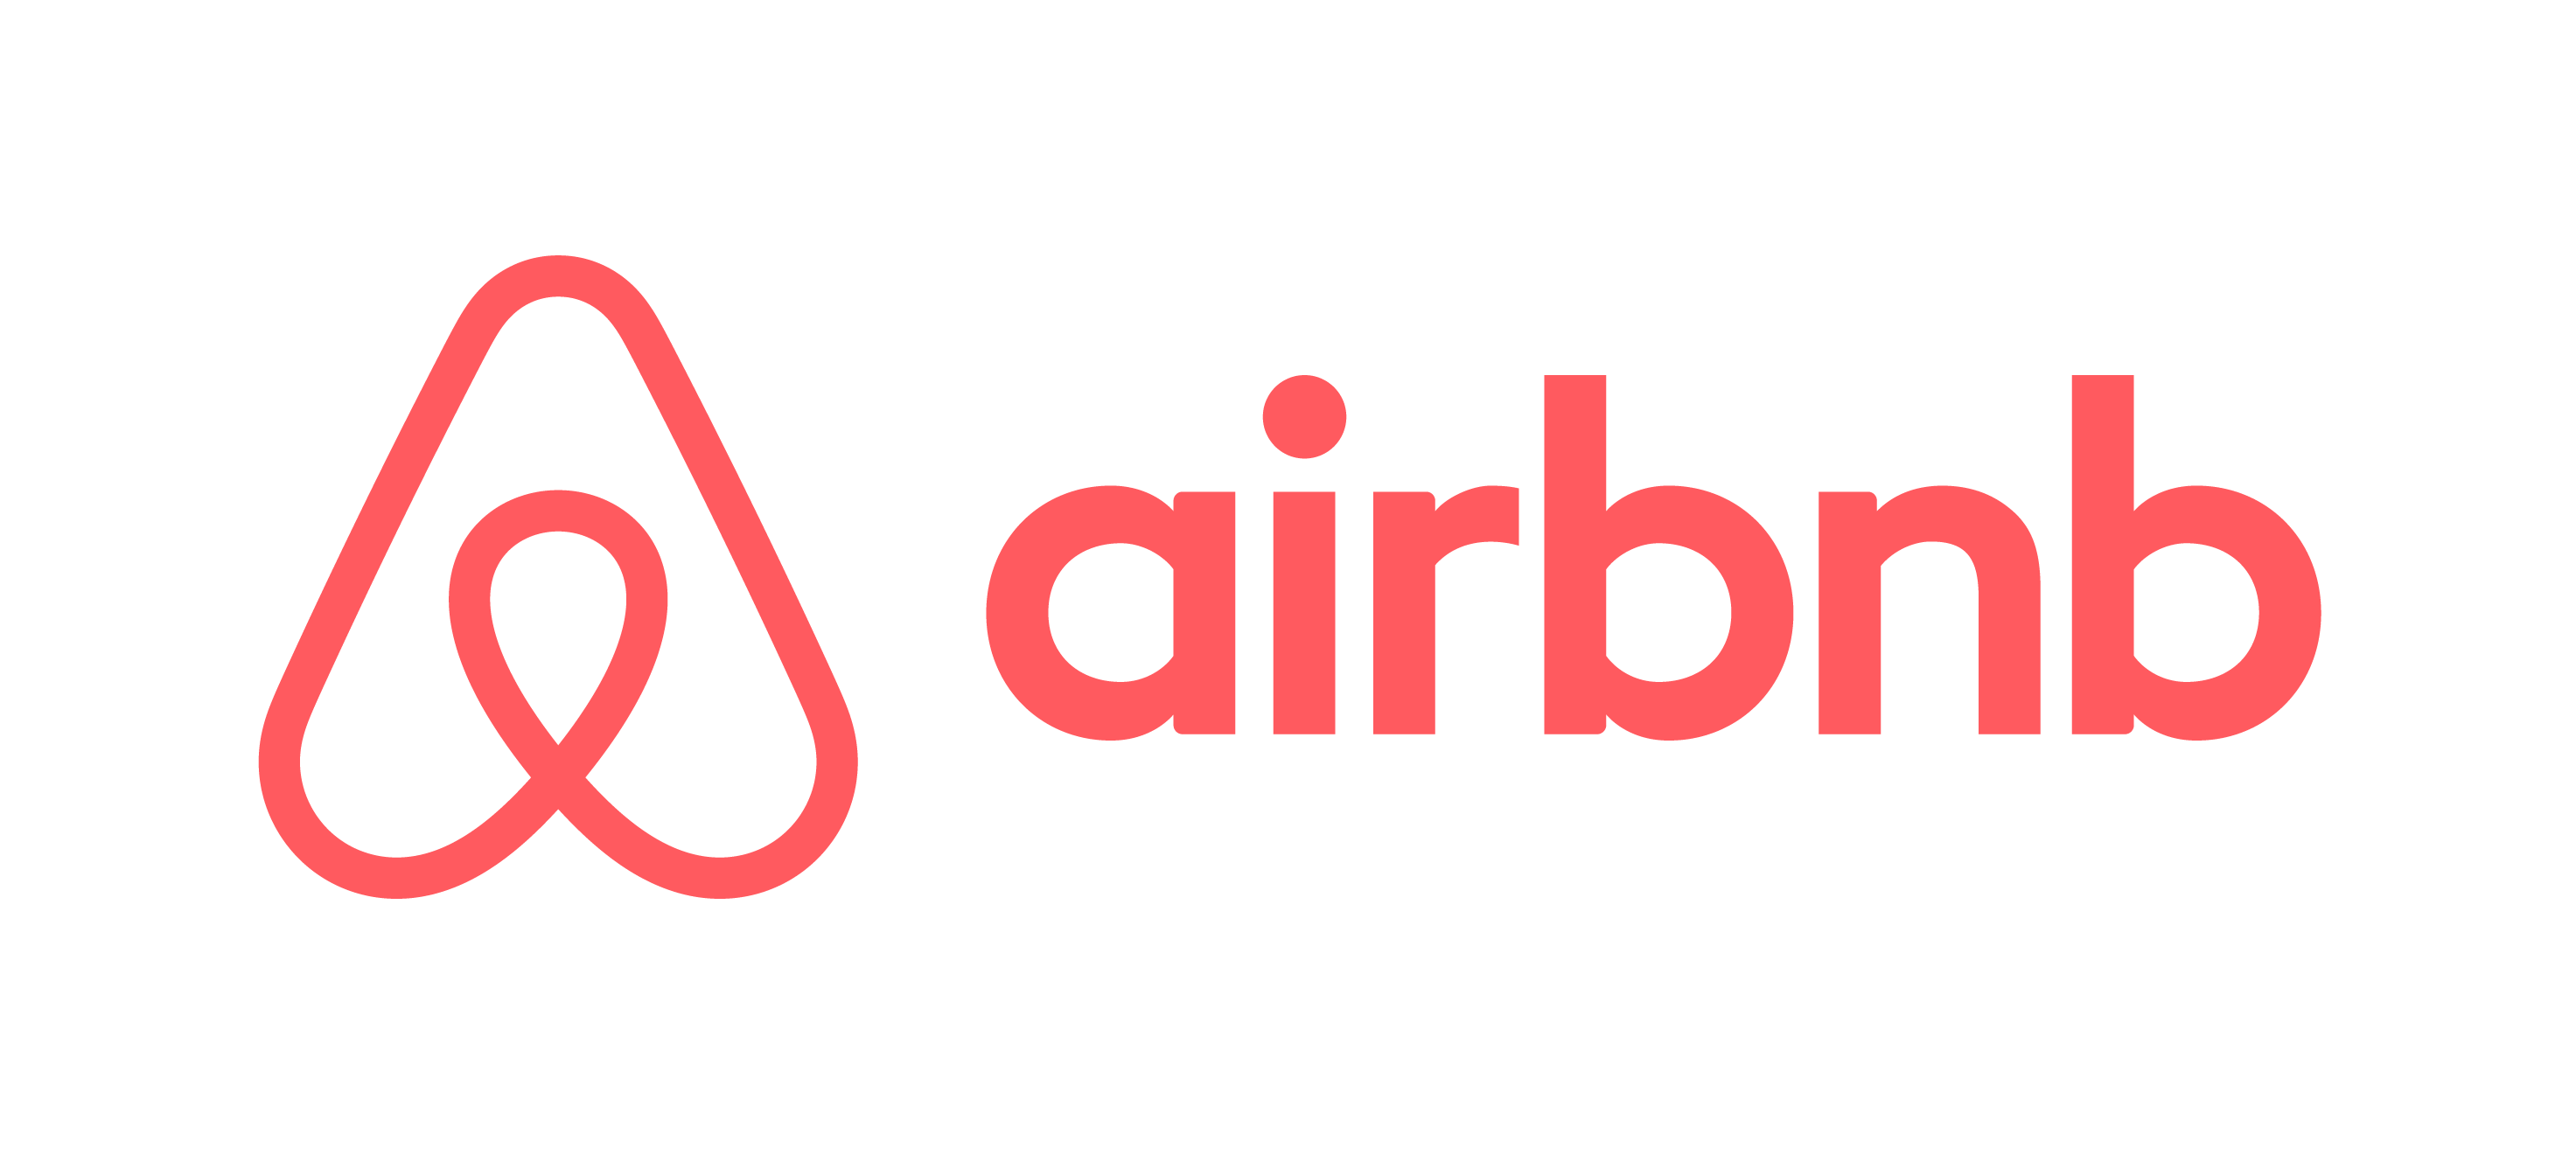 How to get an Airbnb discount code